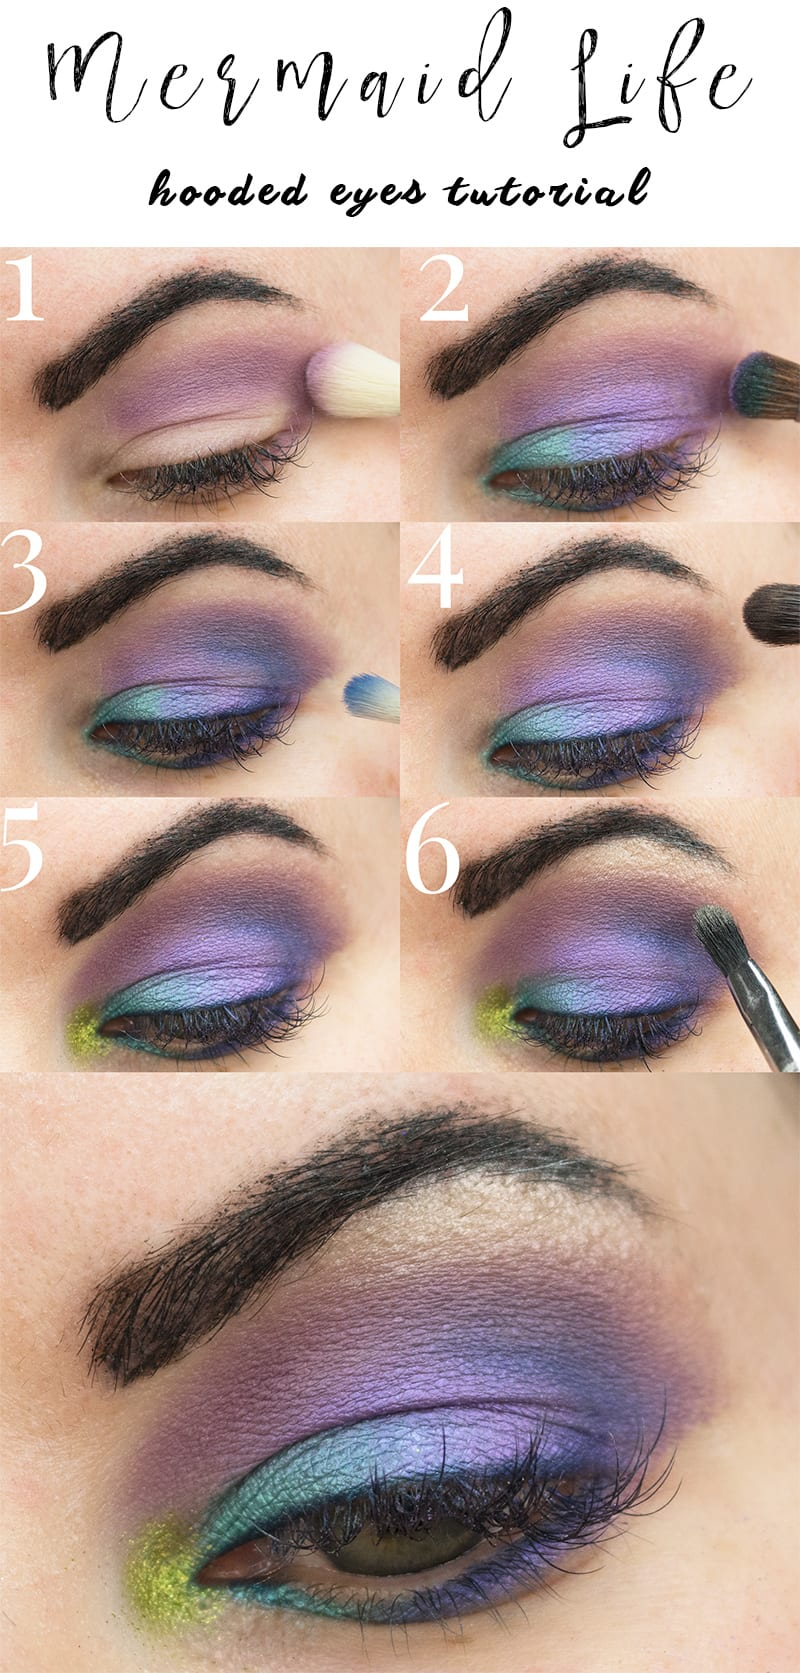 Saucebox Mermaid Life Cruelty-Free Tutorial - This is a colorful purple makeup look with the Mermaid Life palette. Great for hooded eyes!